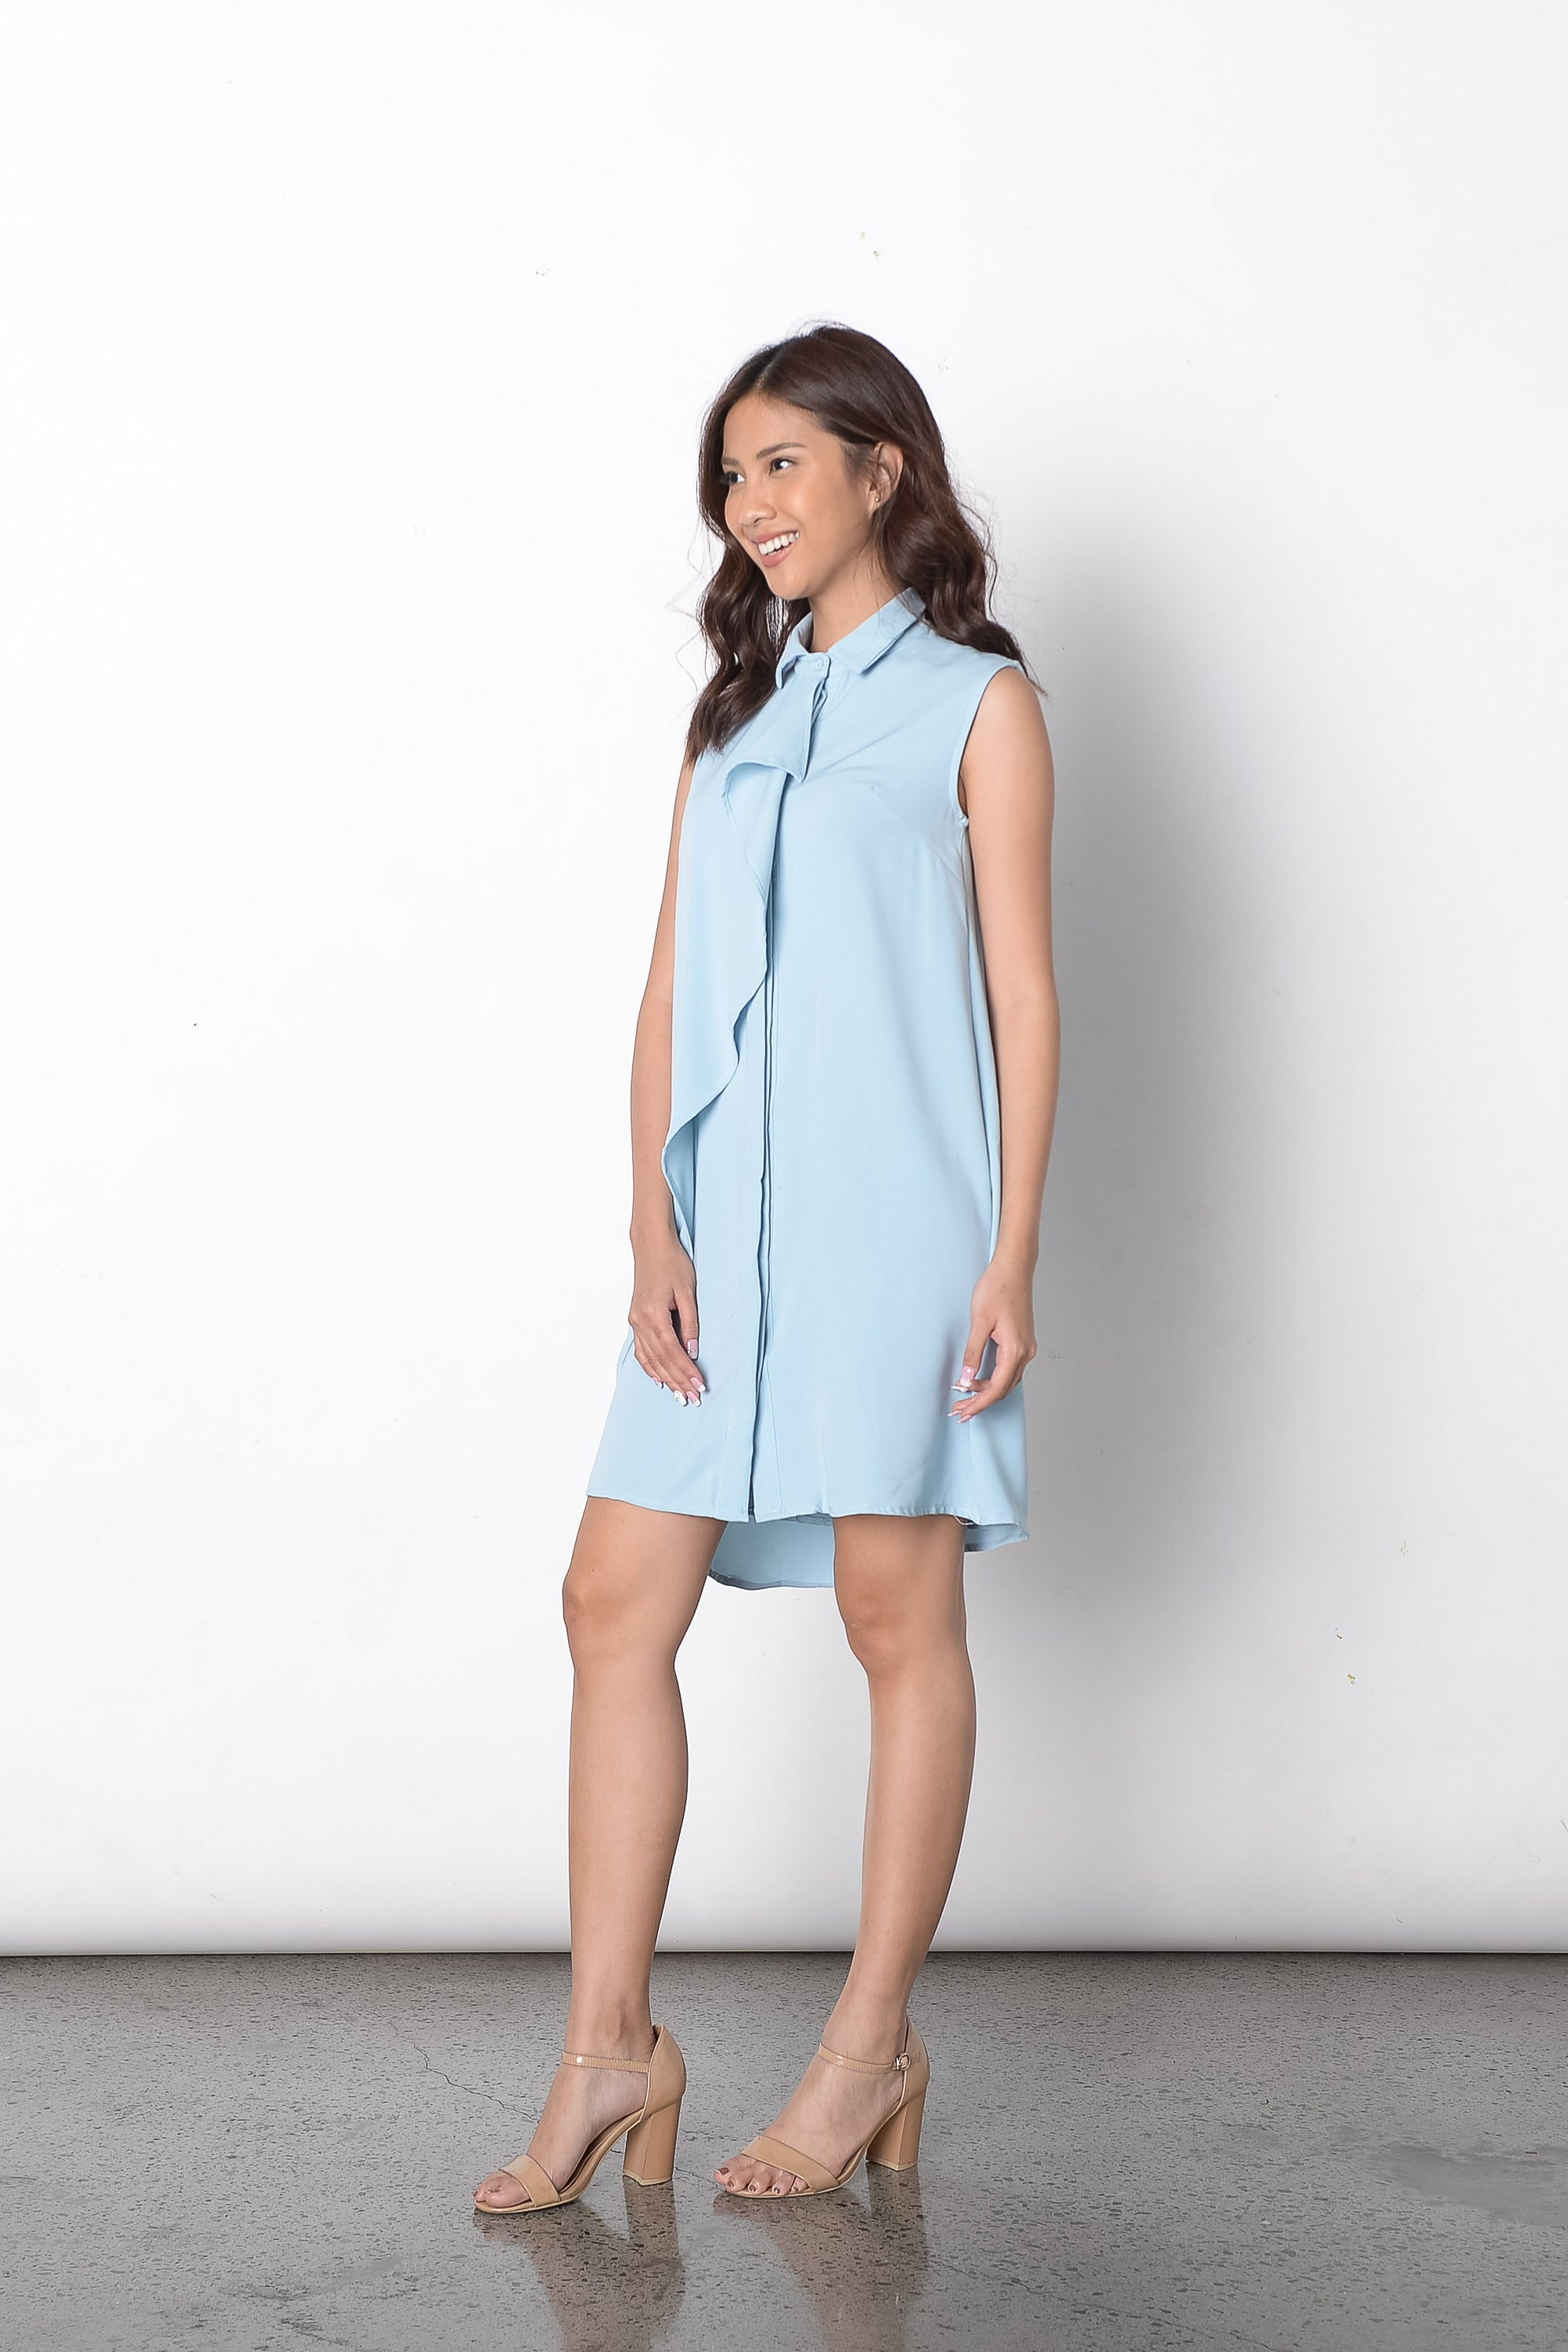 Di Trench Dress in Light Blue